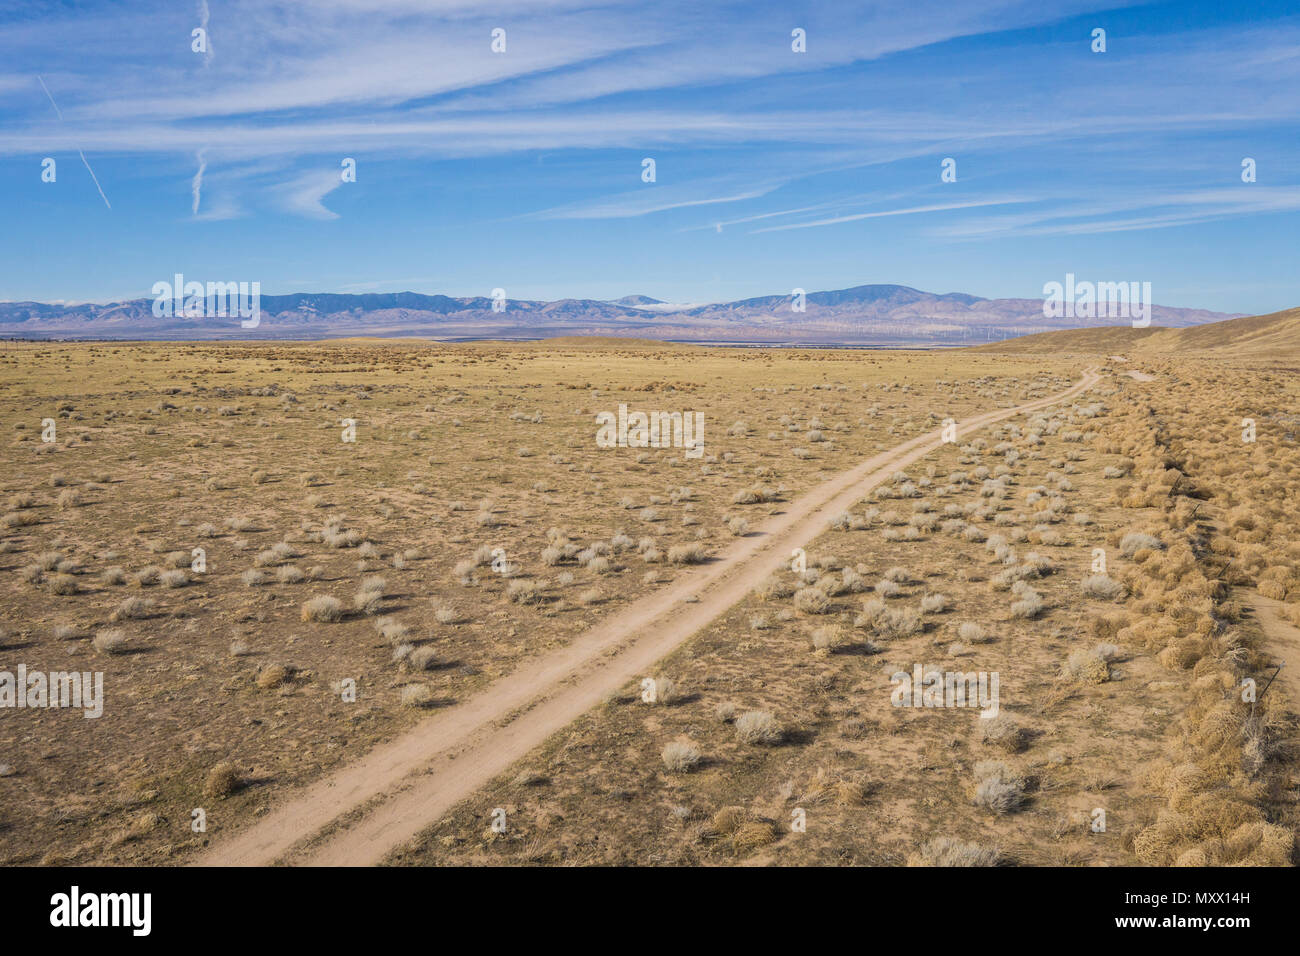 Overhead view of dirt road running alongside a wire fence in the vast dry plains of central California. Stock Photo